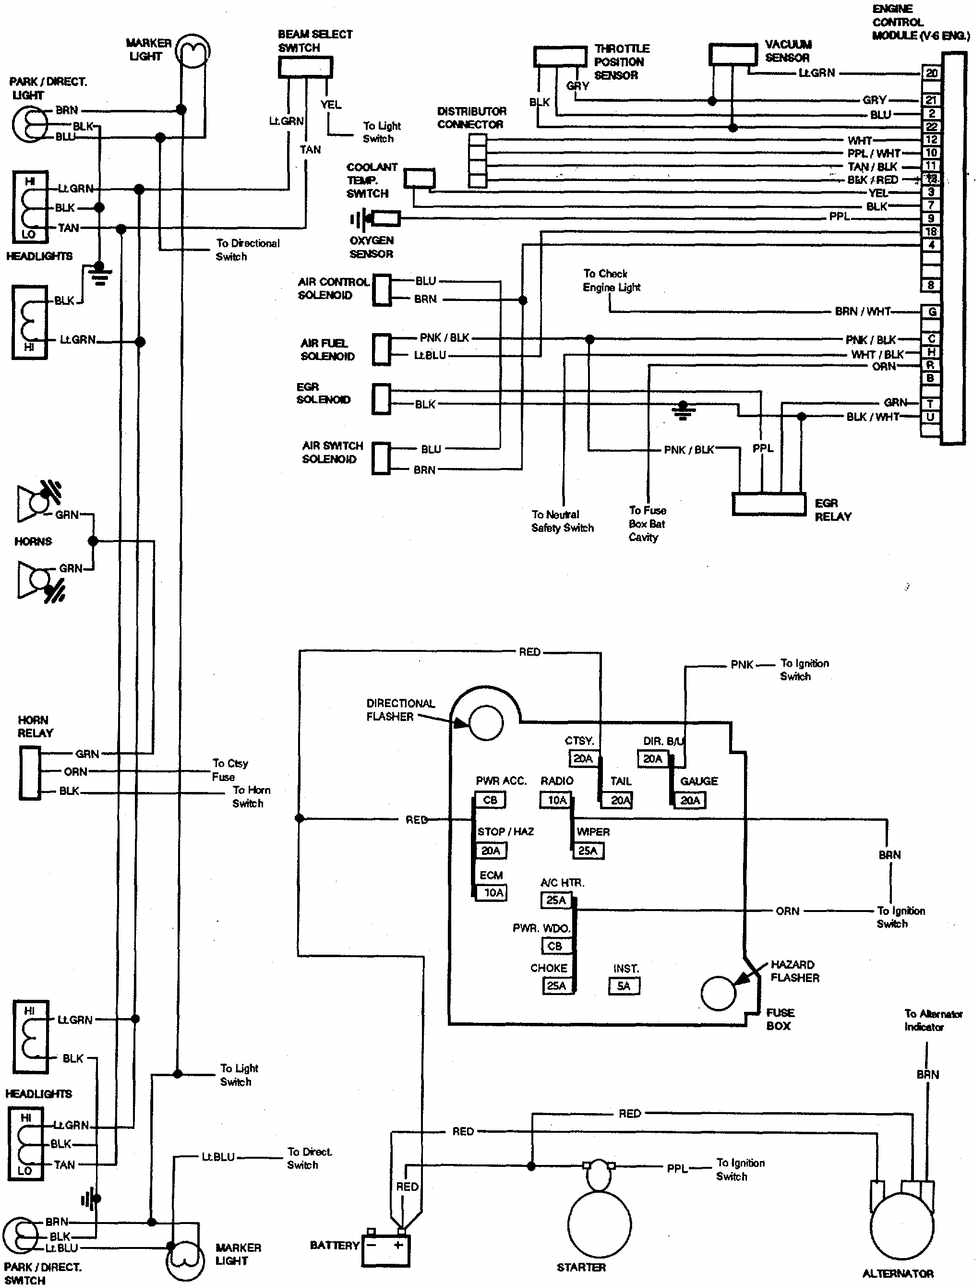 Chevrolet V Trucks Electrical Wiring Diagram on chevy 350 tbi vacuum line diagram